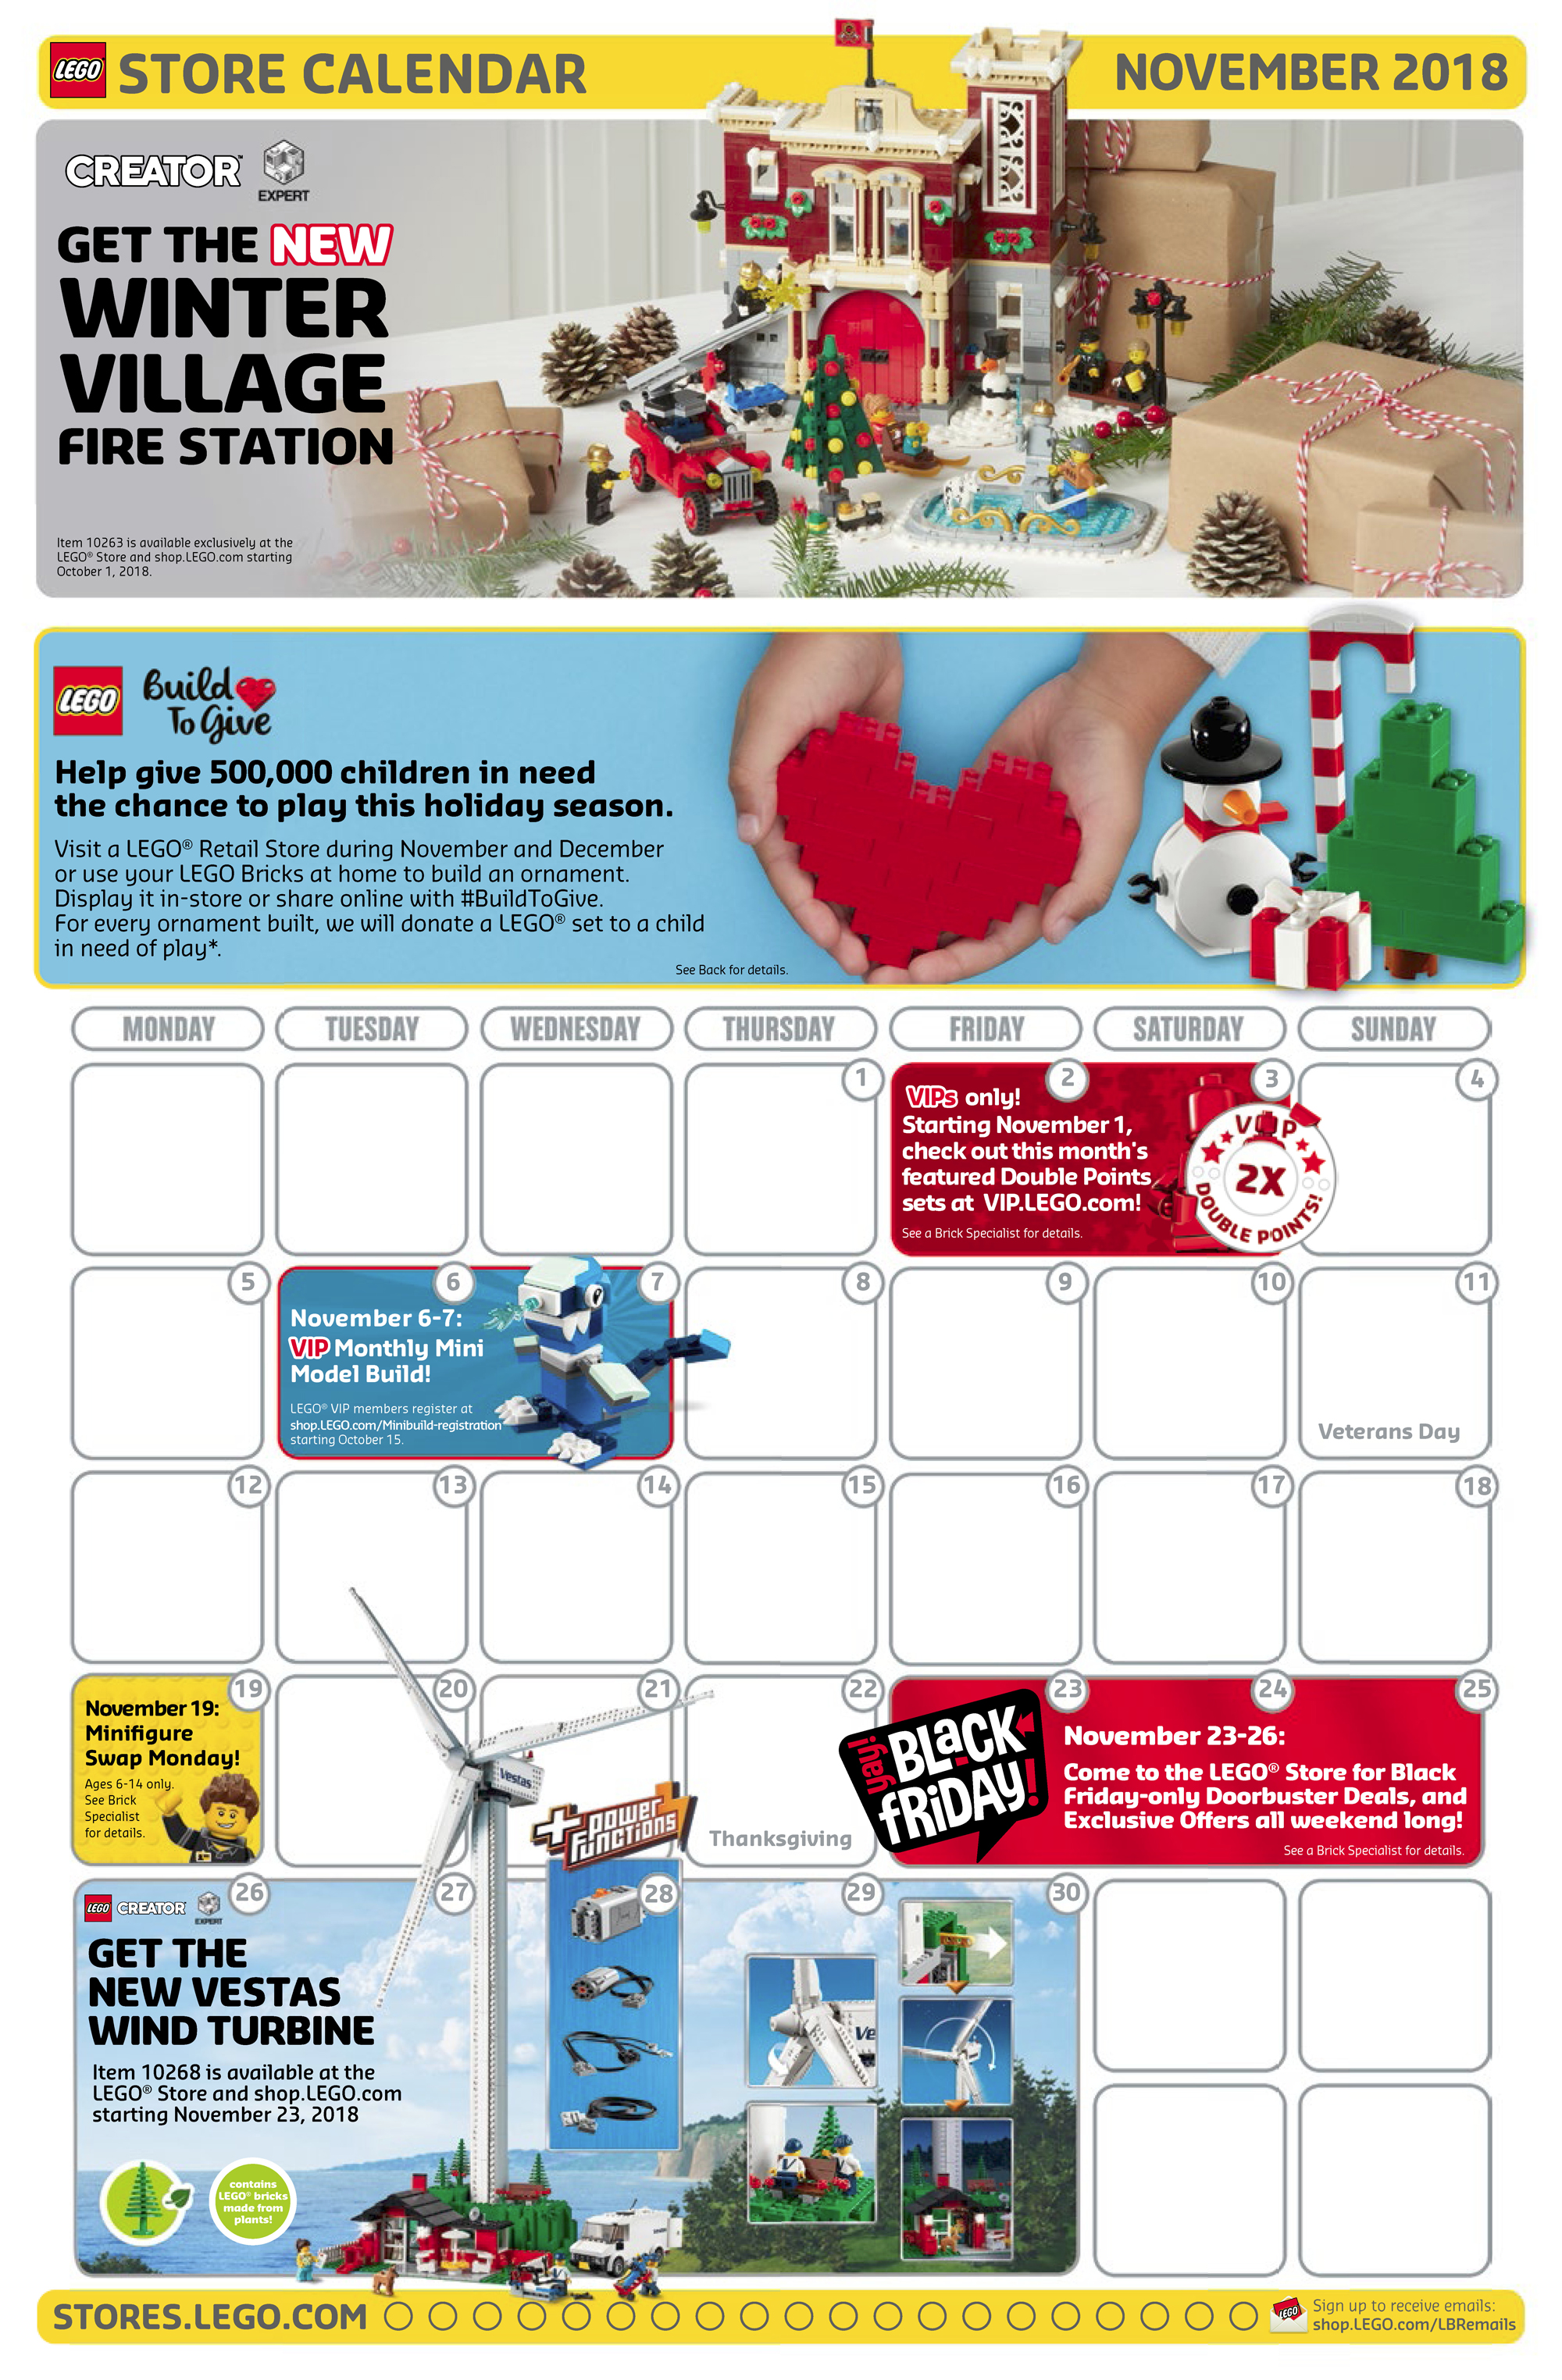 Lego November 2020 Calendar LEGO Store November 2018 Calendar Now Up With Its Latest Promotions